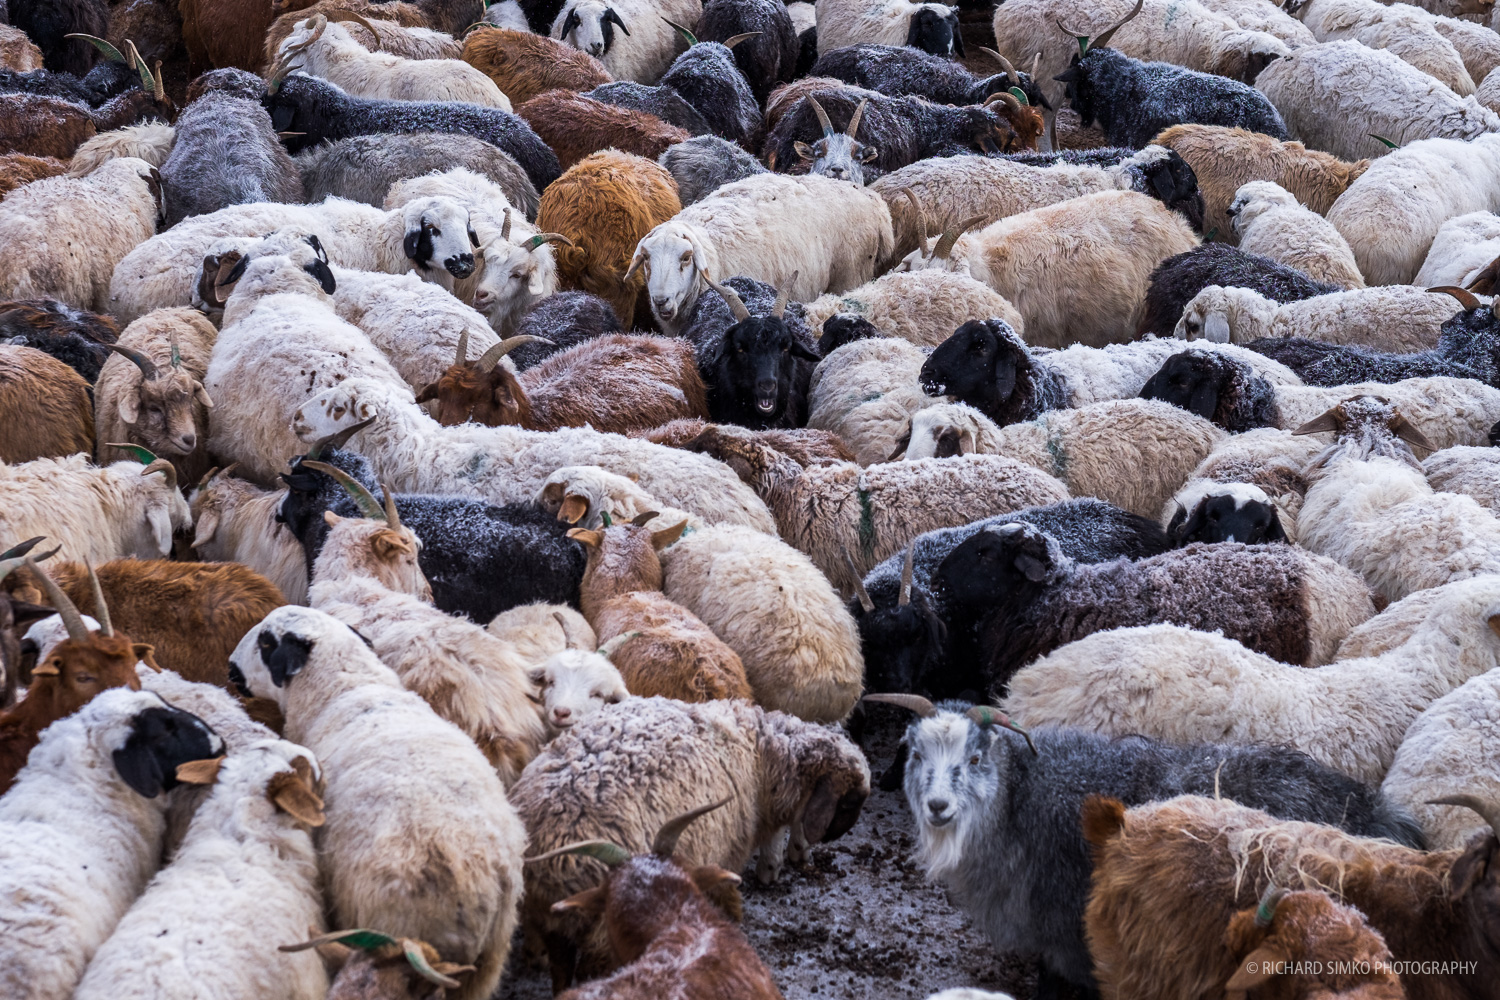 Nights are cold even for animals protected by thick layer of fur. Sheep and goat are bundled together trying to preserve the warmth as much as possible.